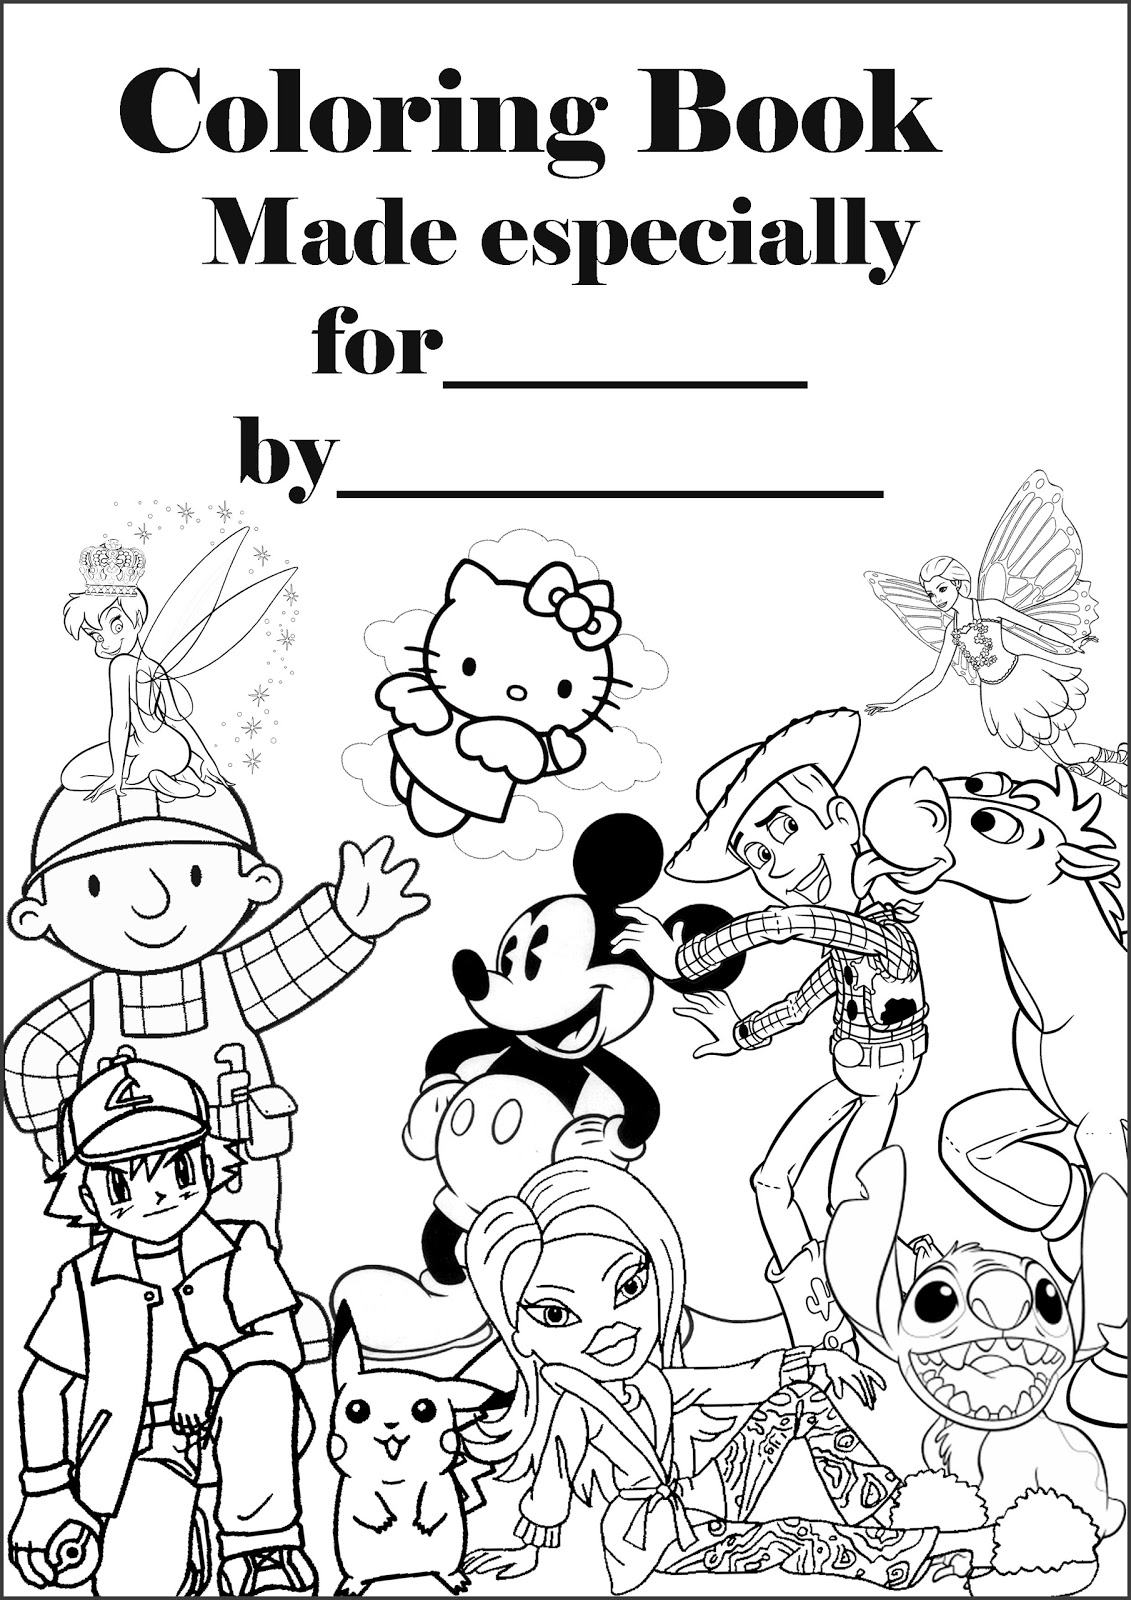 How To Make A Coloring Page From A Picture Make A Photo Into A Coloring Page